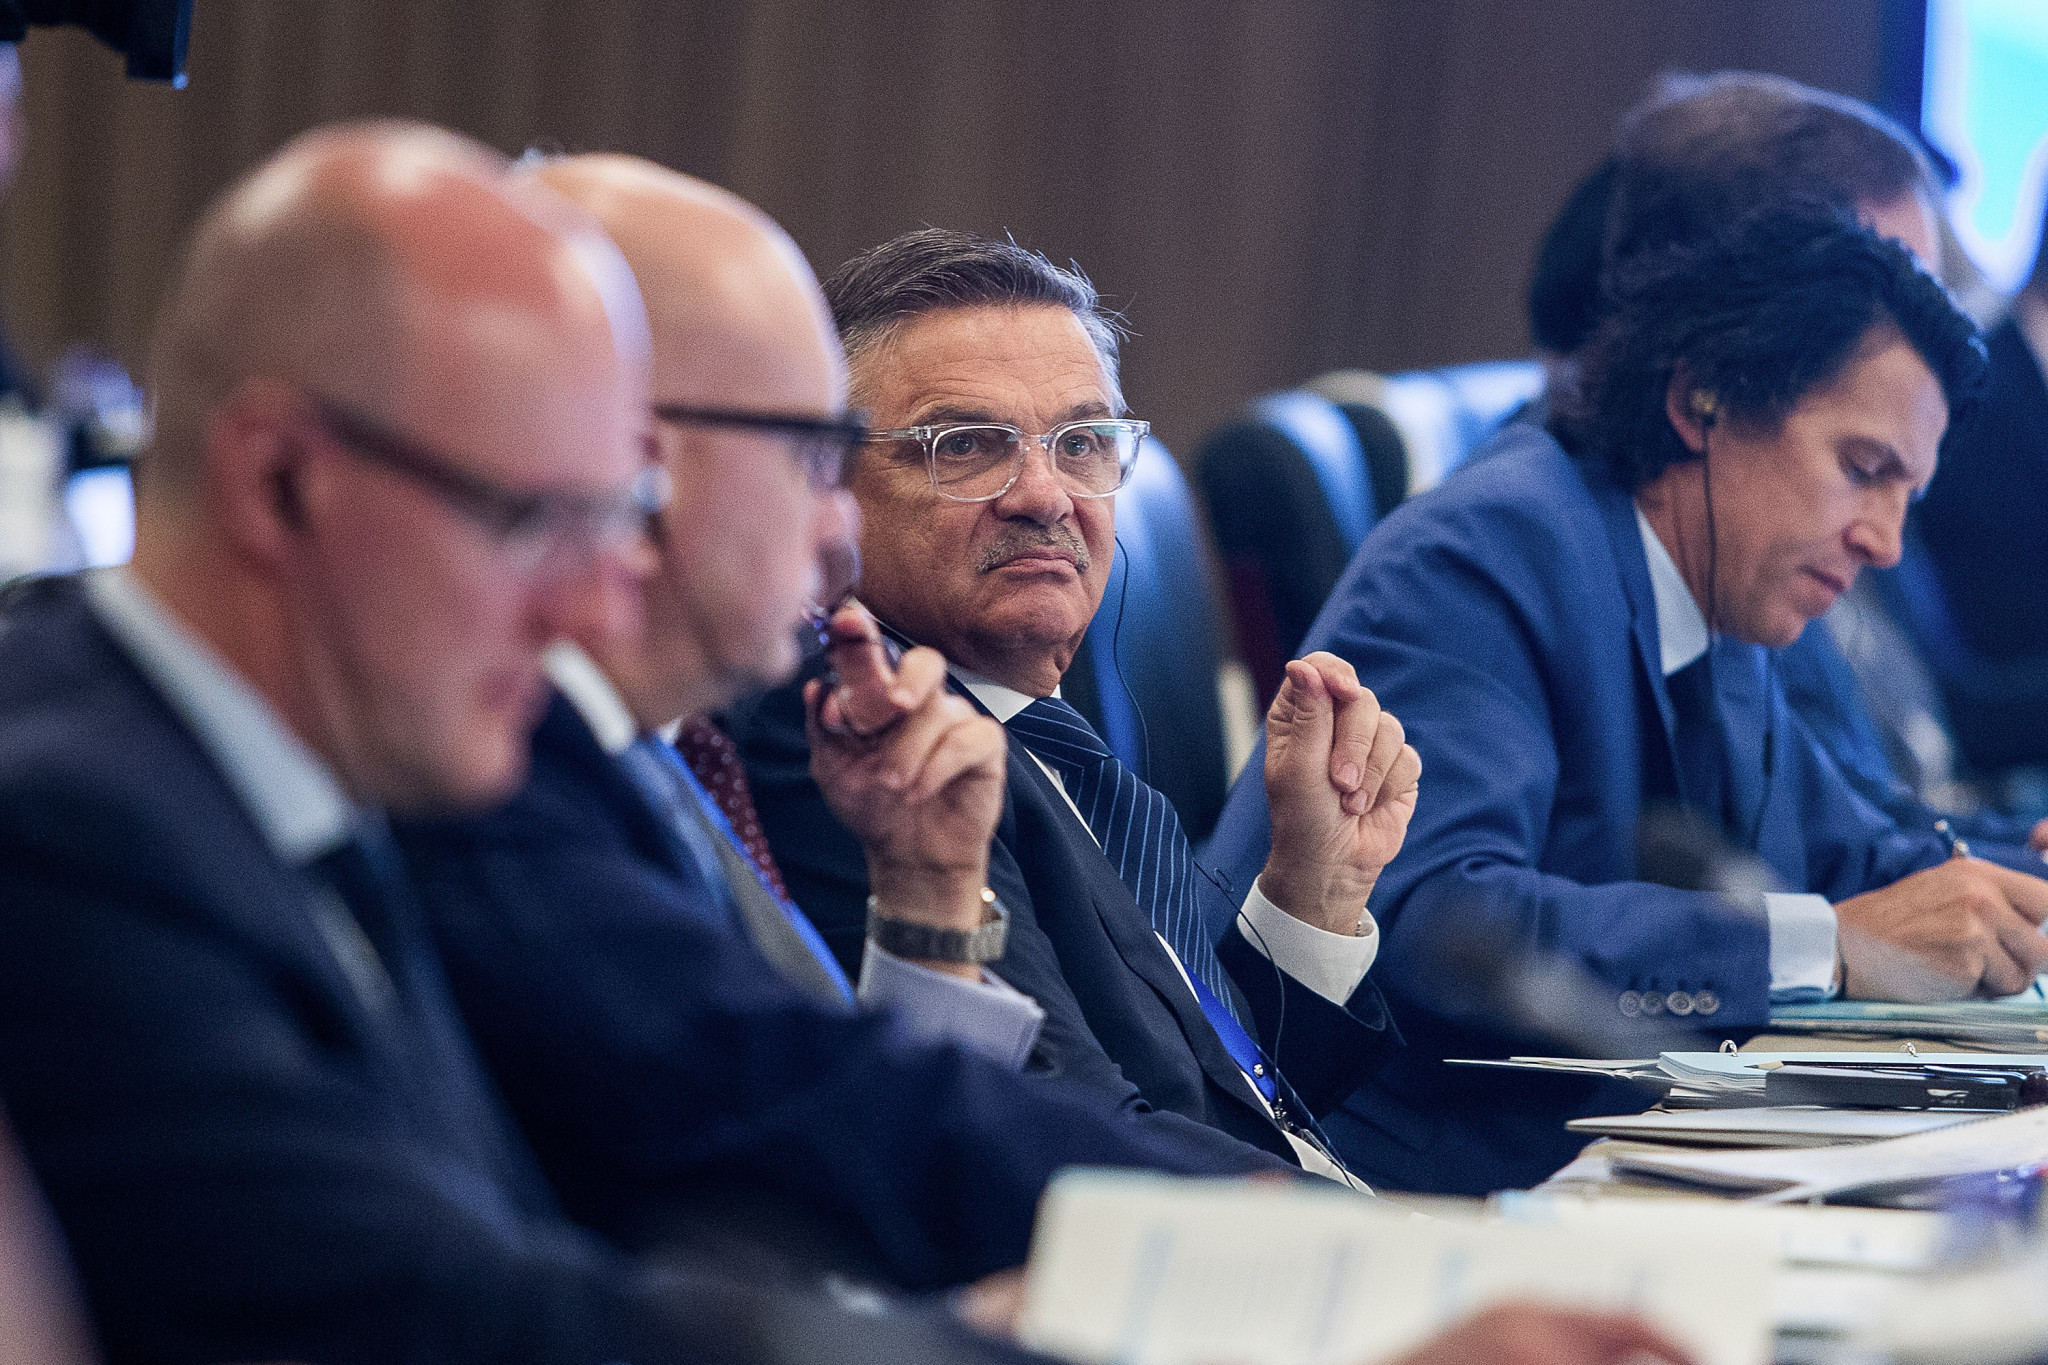 IIHF President René Fasel is the longest serving of the Winter International Federation Presidents ©Getty Images